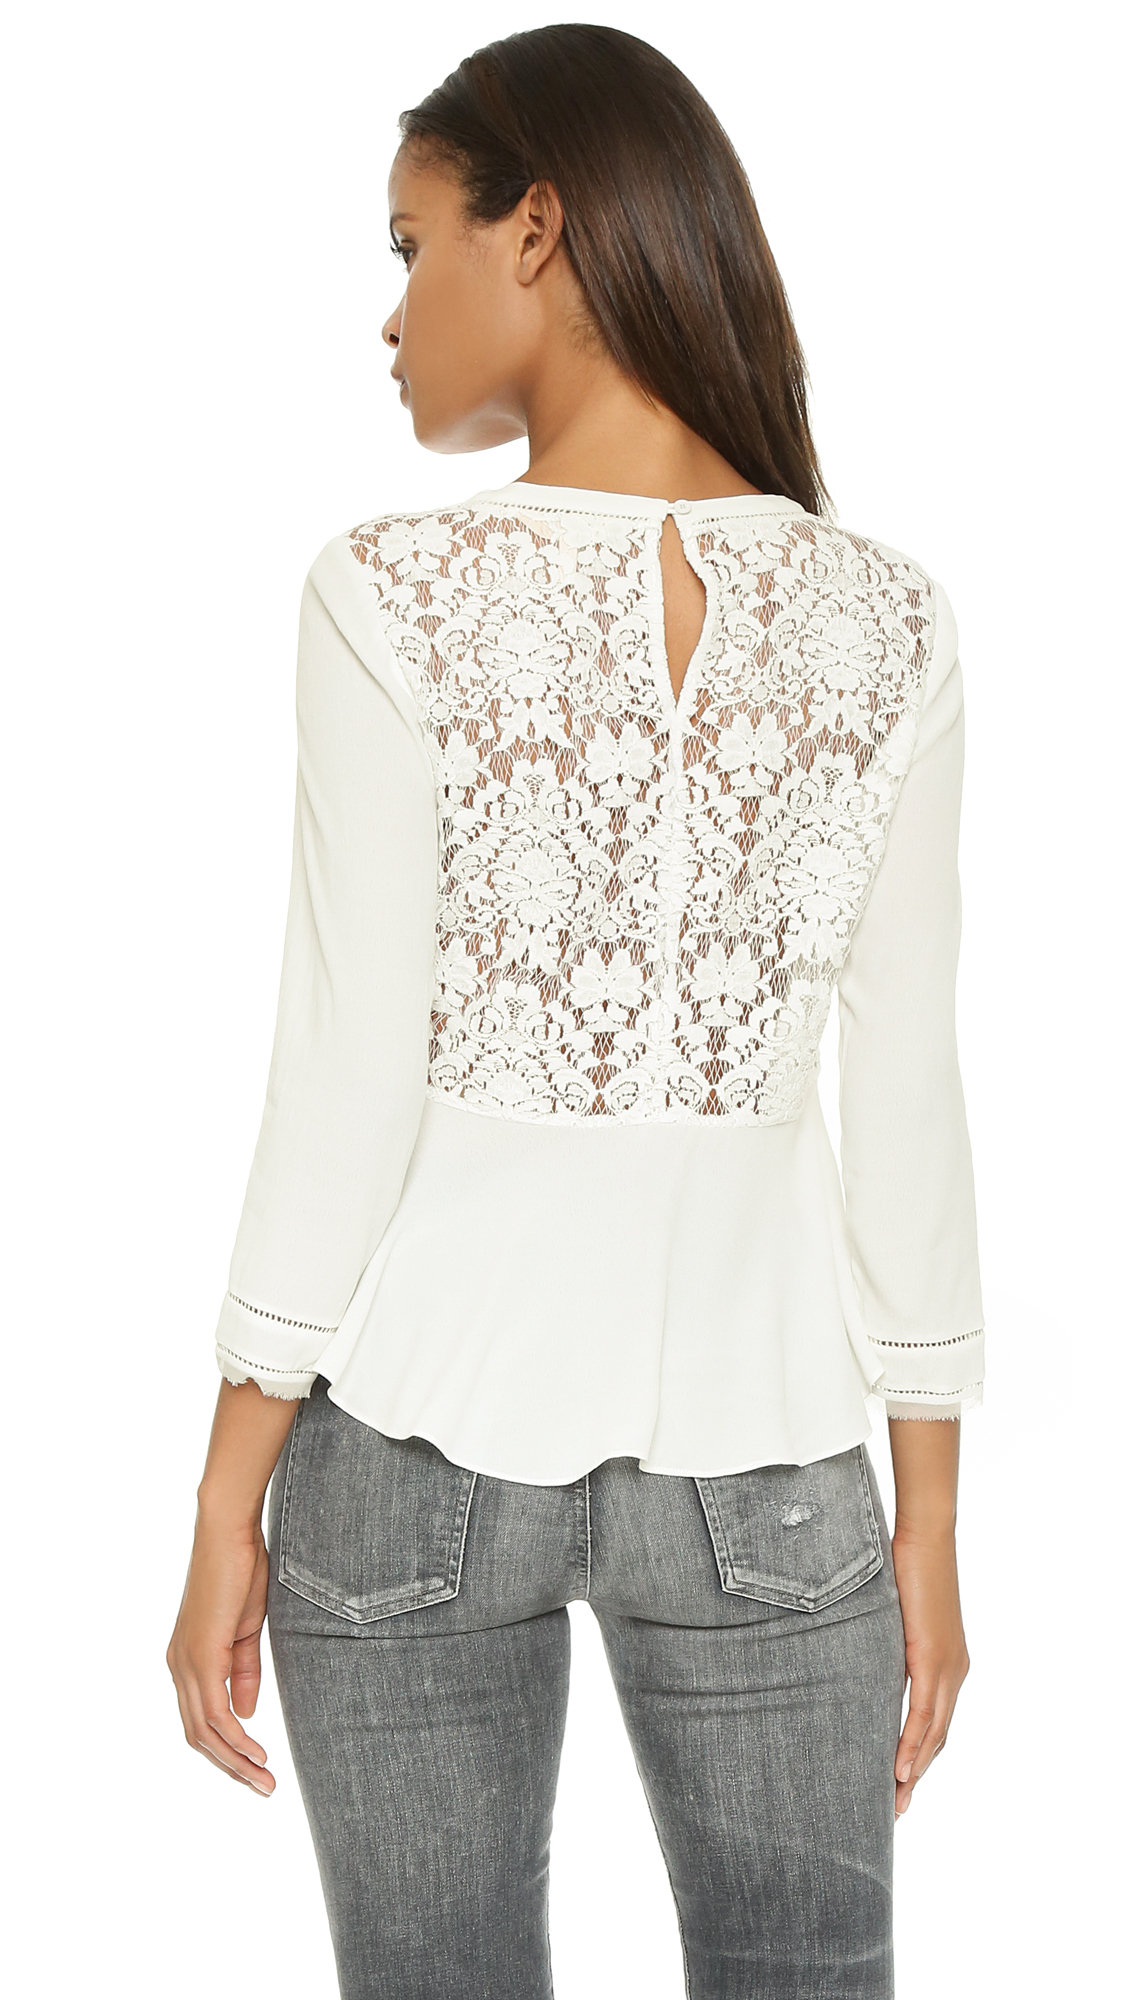 Rebecca taylor Lace Back Top in White   Lyst